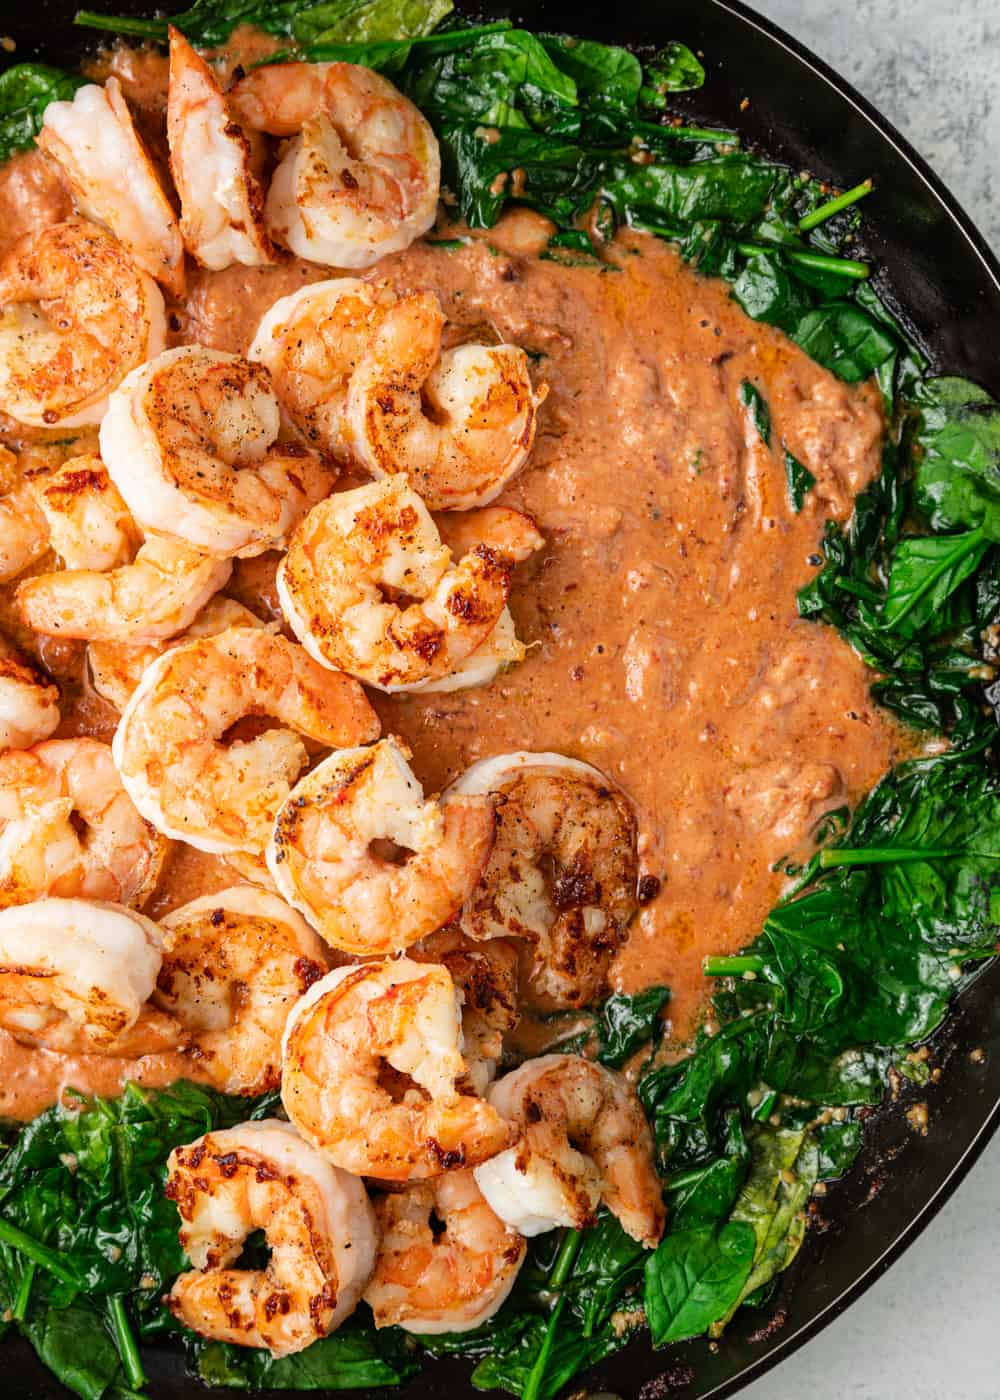 sauteed shrimp with tomato sauce and spinach